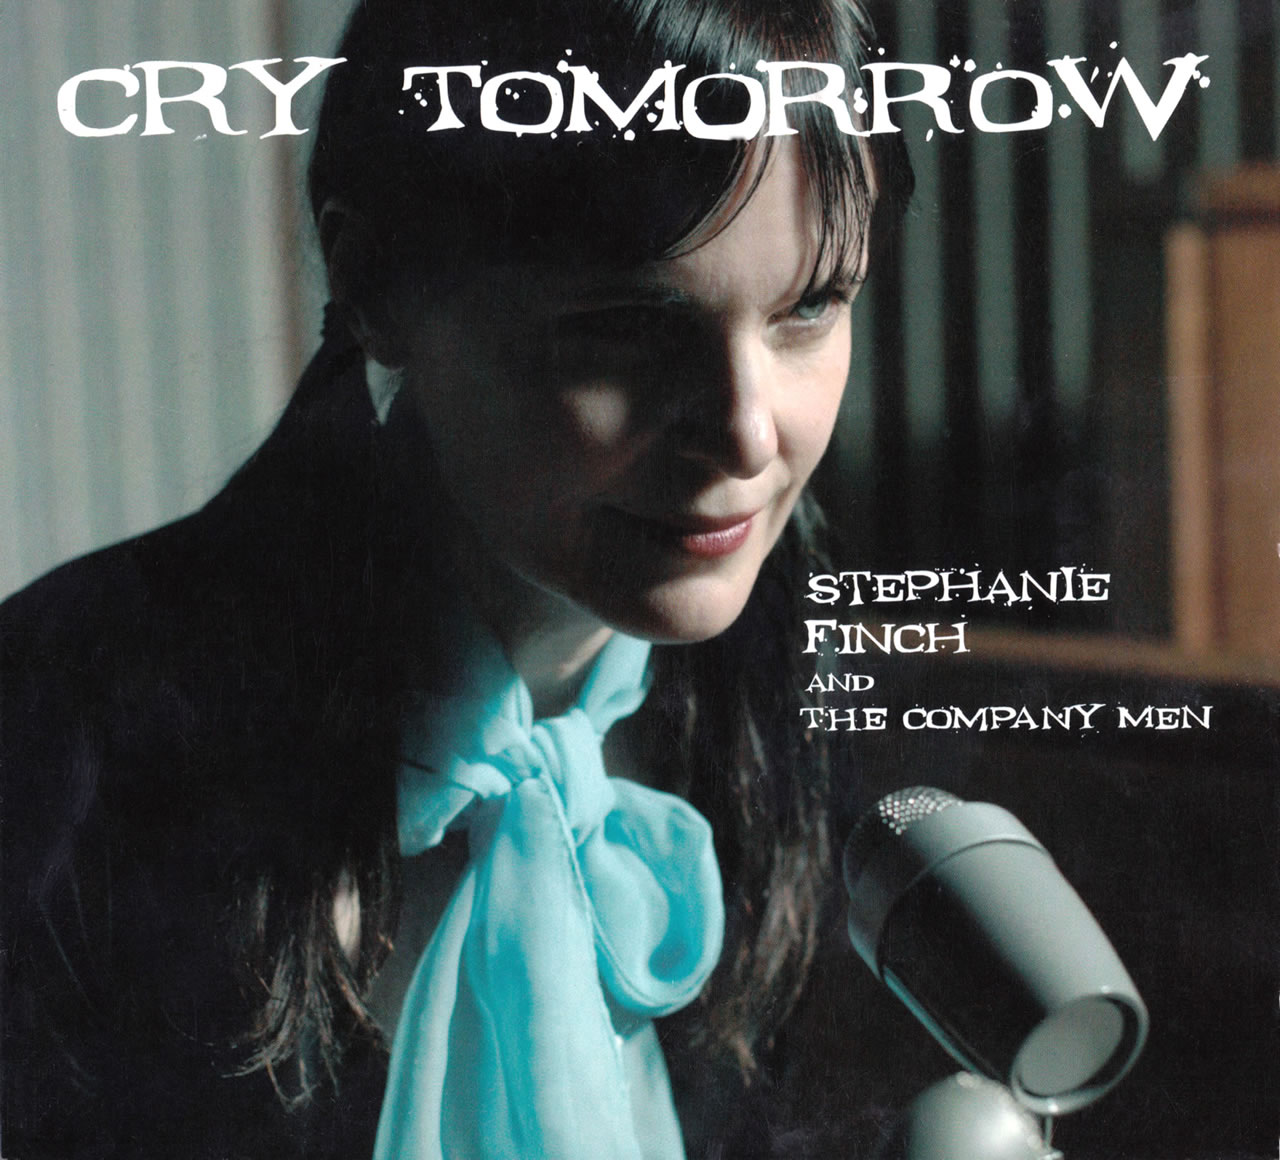 Stephanie Finch And The Company Men 'Cry Tomorrow' CD